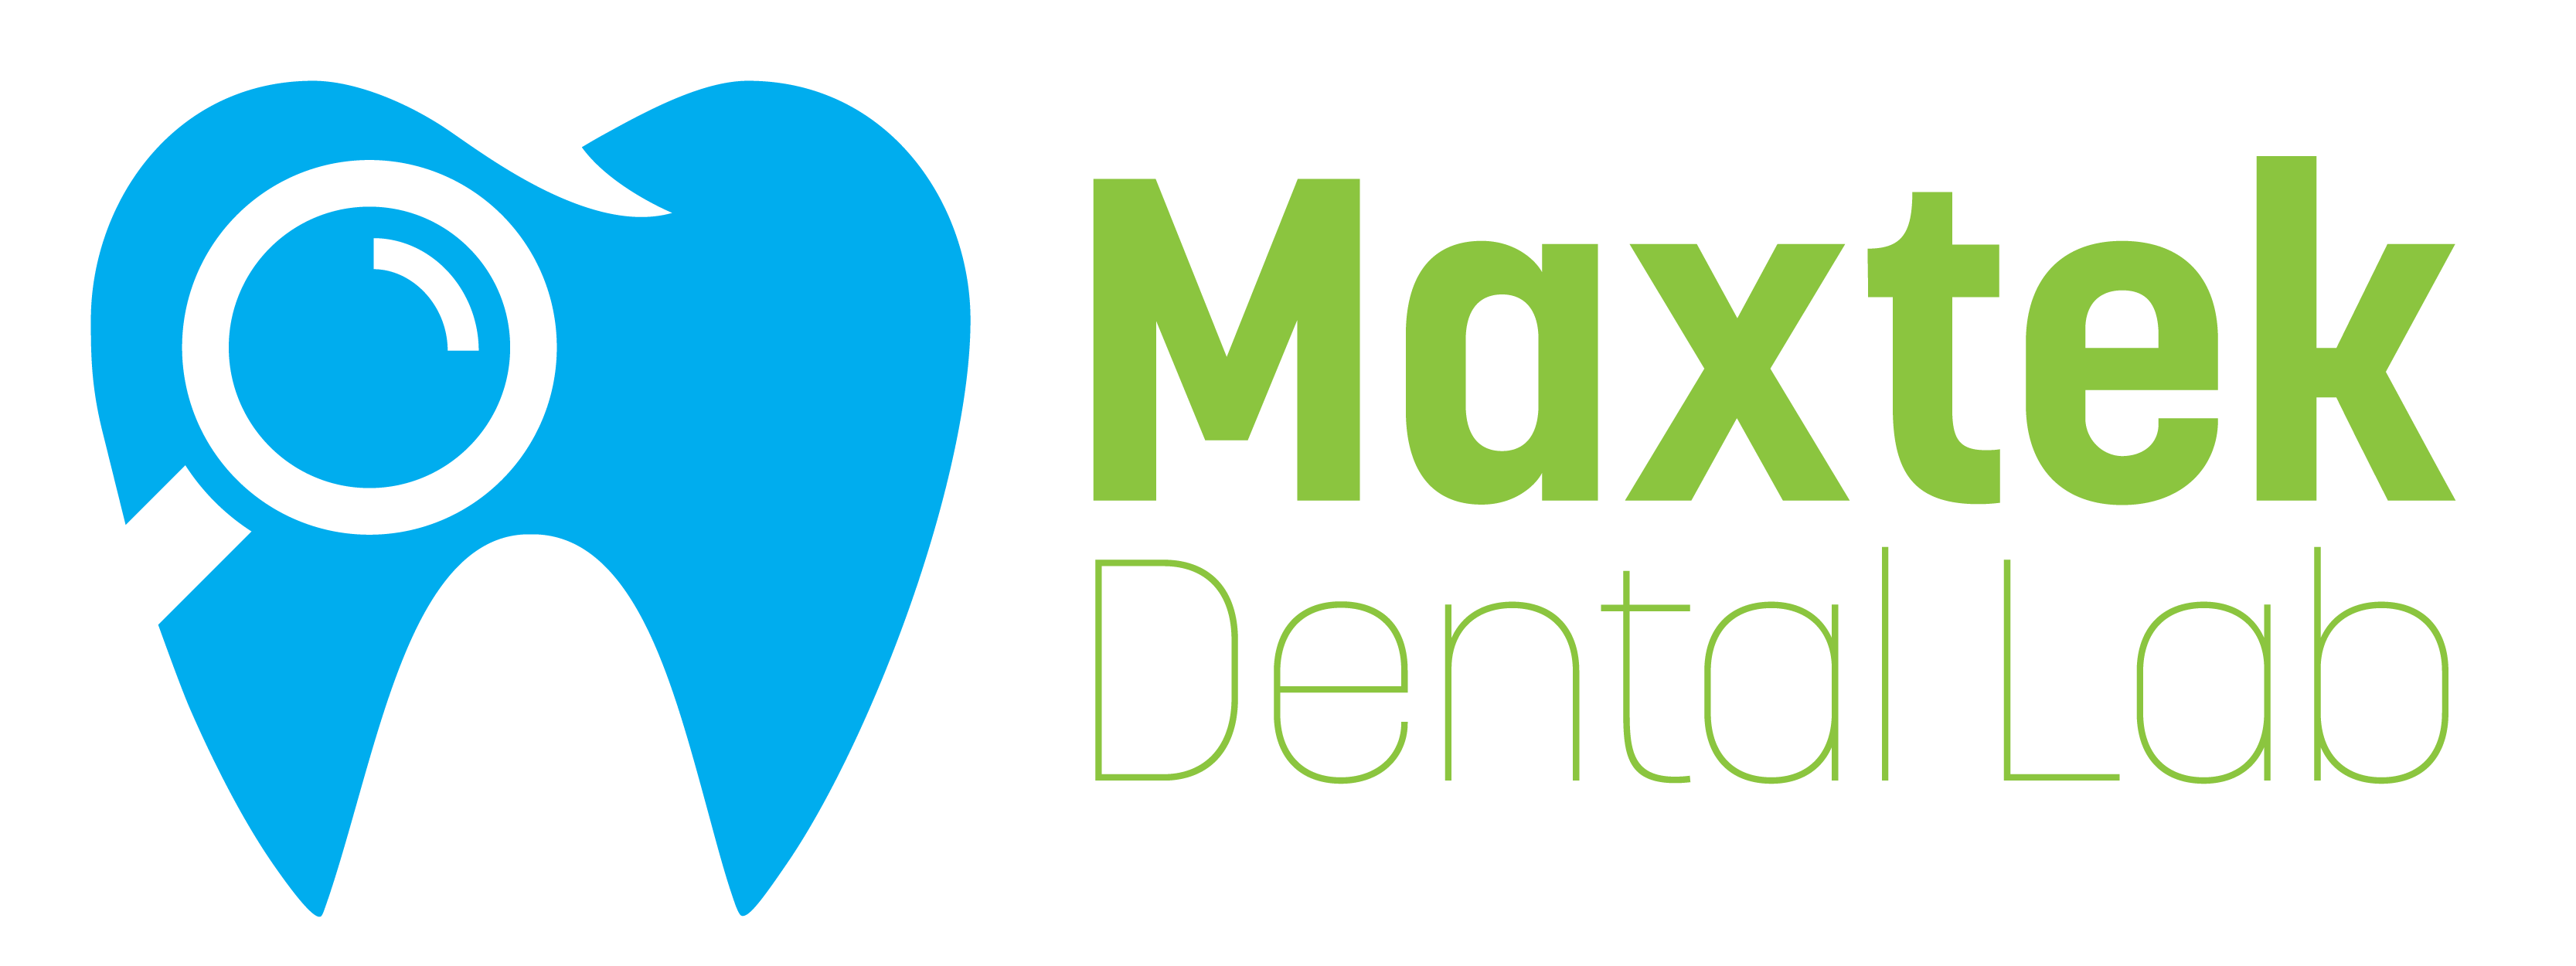 Max Tek Dental Lab